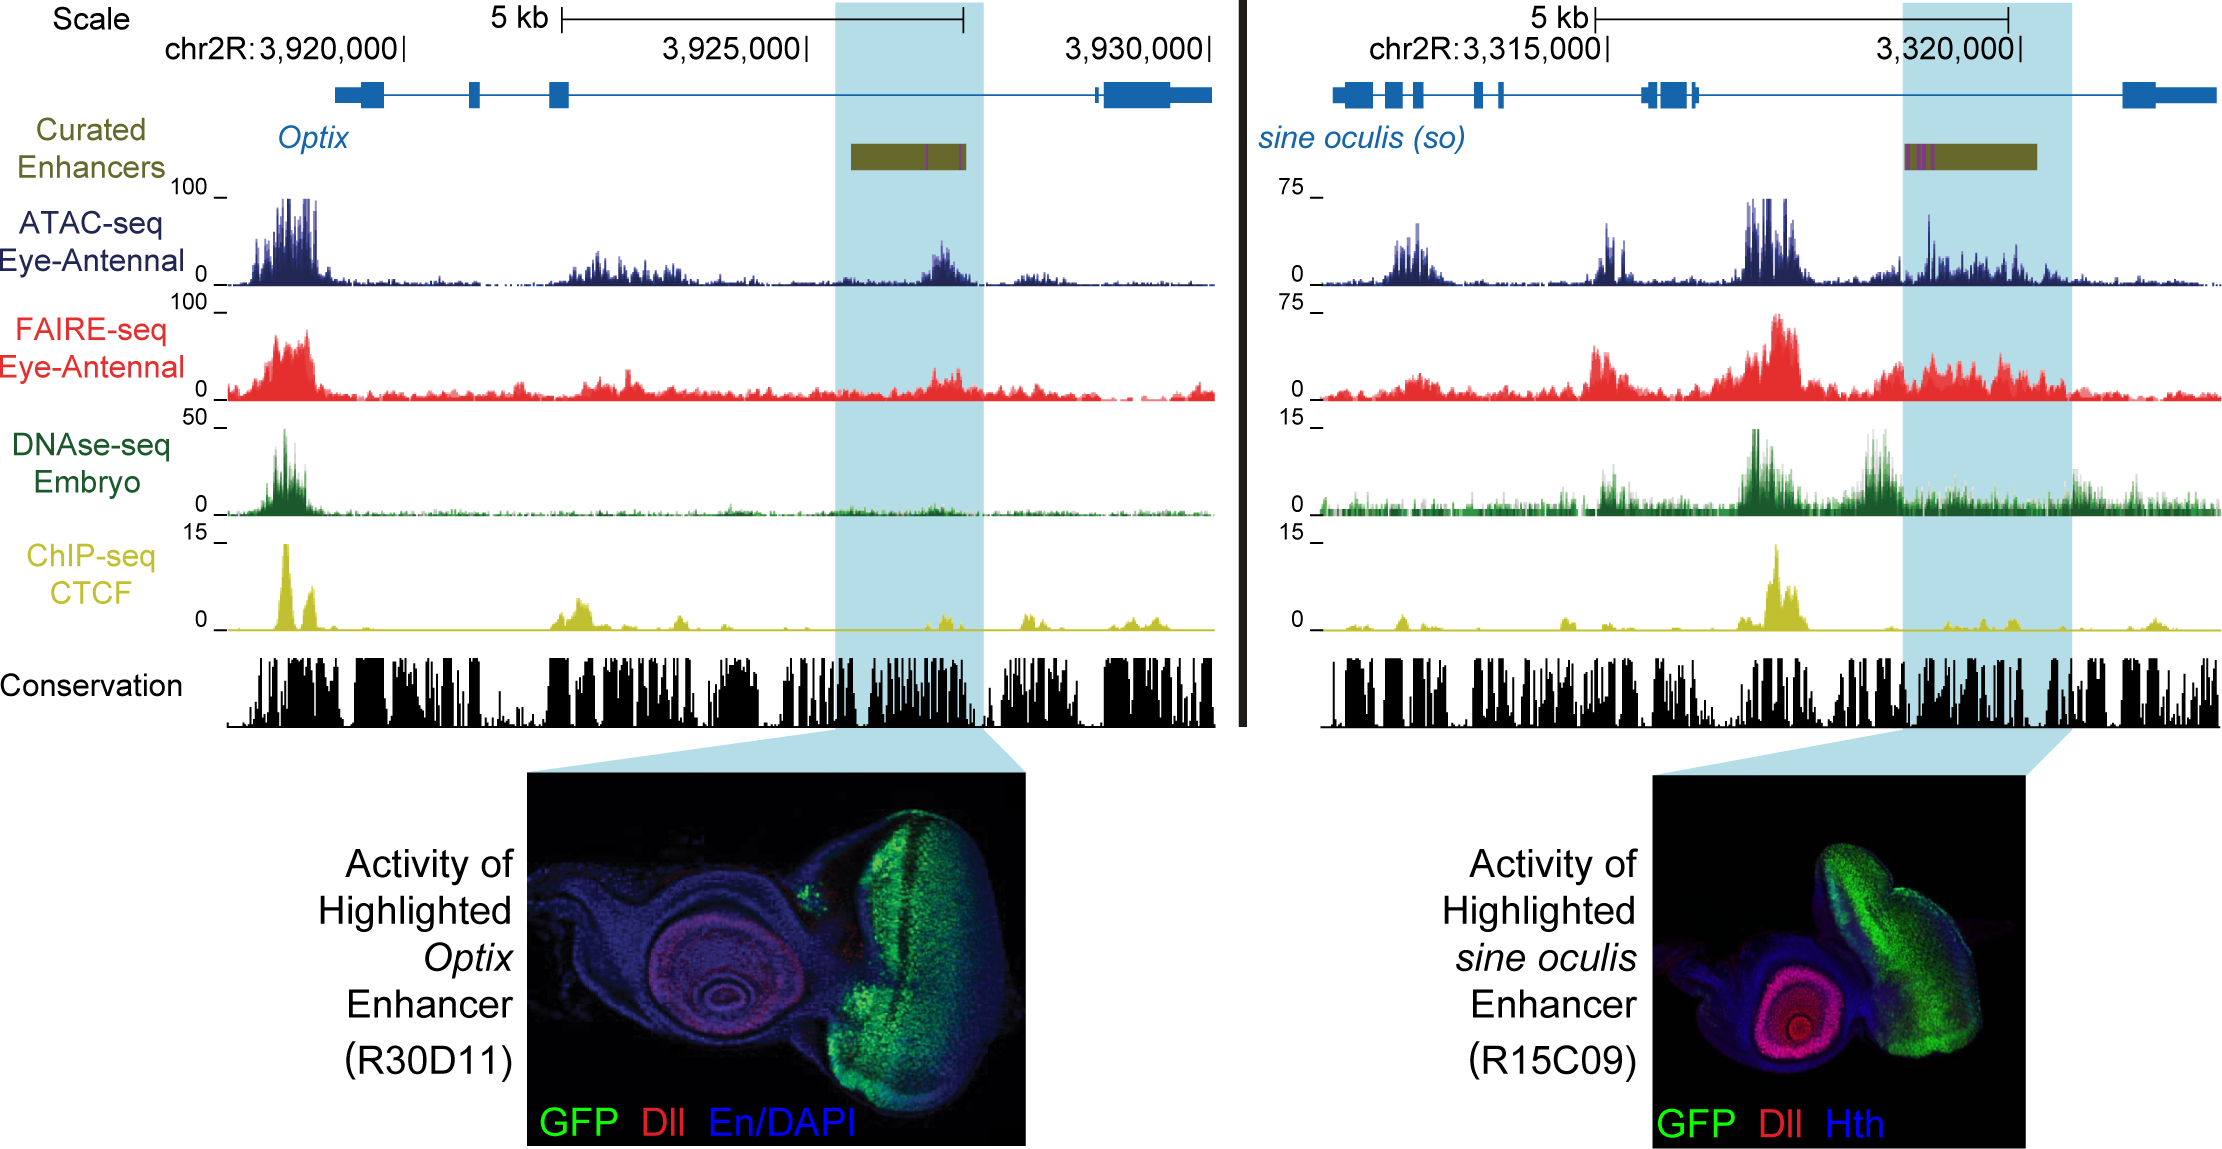 Enhancer identification in the eye primordium by ATAC-seq and FAIRE-seq.